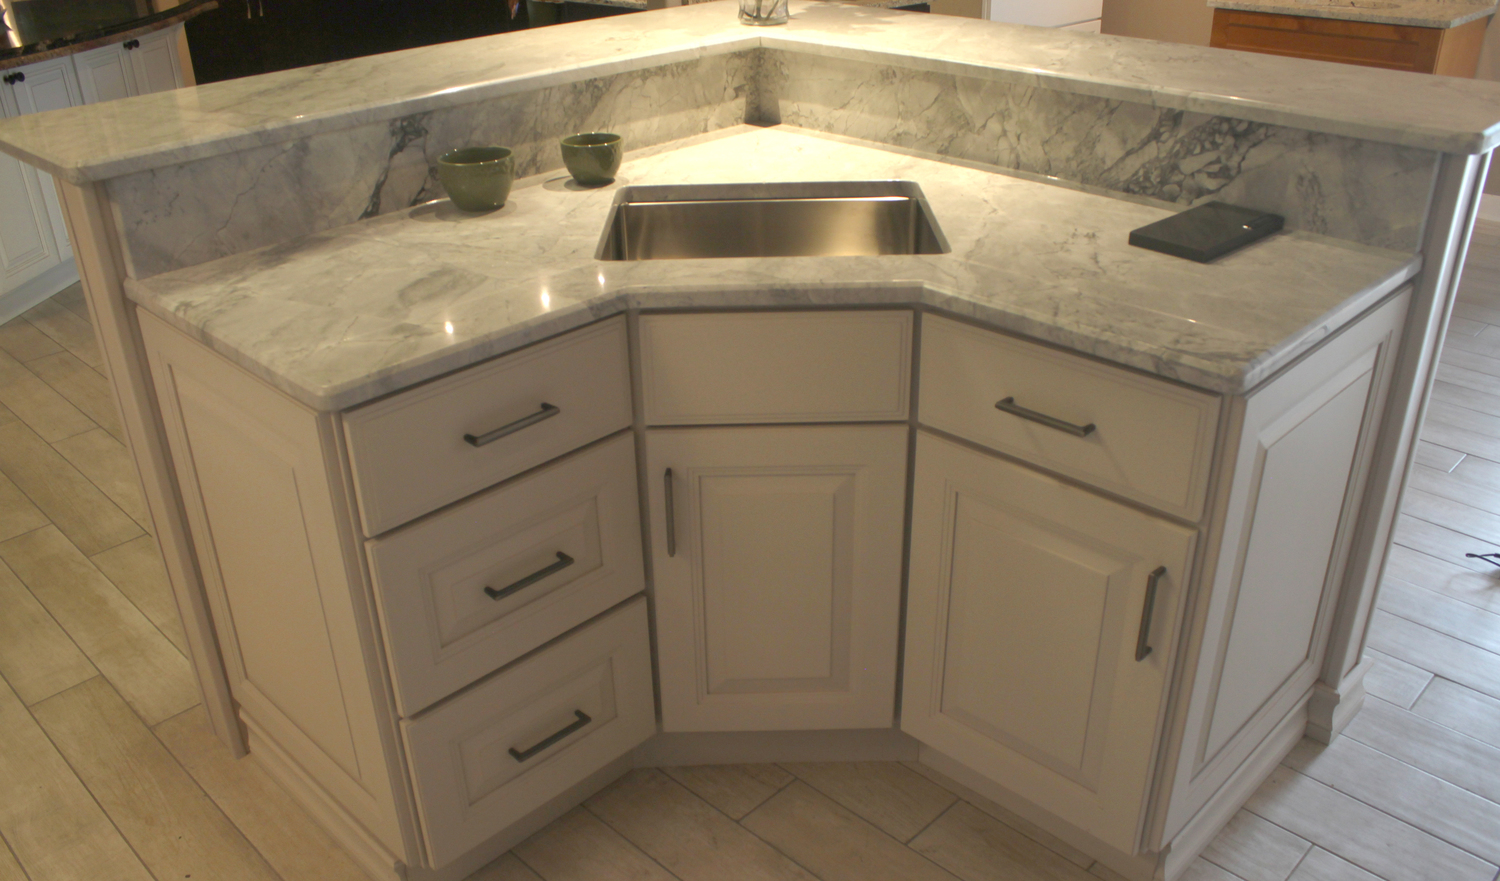 Niles Kitchen Cabinets Sinks And Countertops Rock Counter